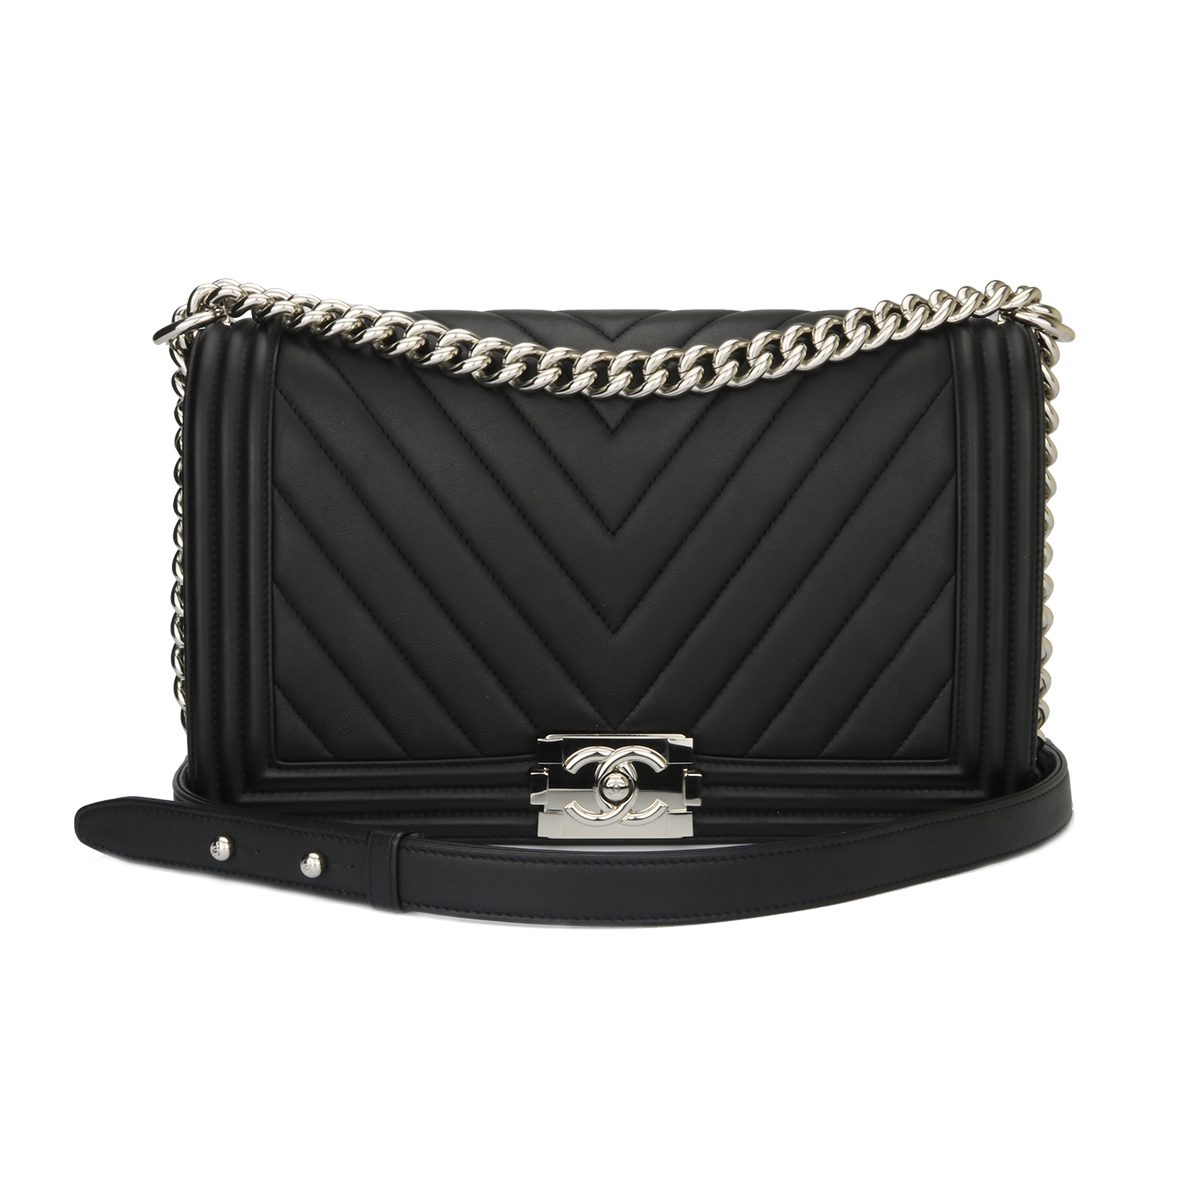 2a99f7cb8a8f Home/Chanel/CHANEL New Medium Boy Black Calfskin Chevron Shiny Silver  Hardware 2016. ; 